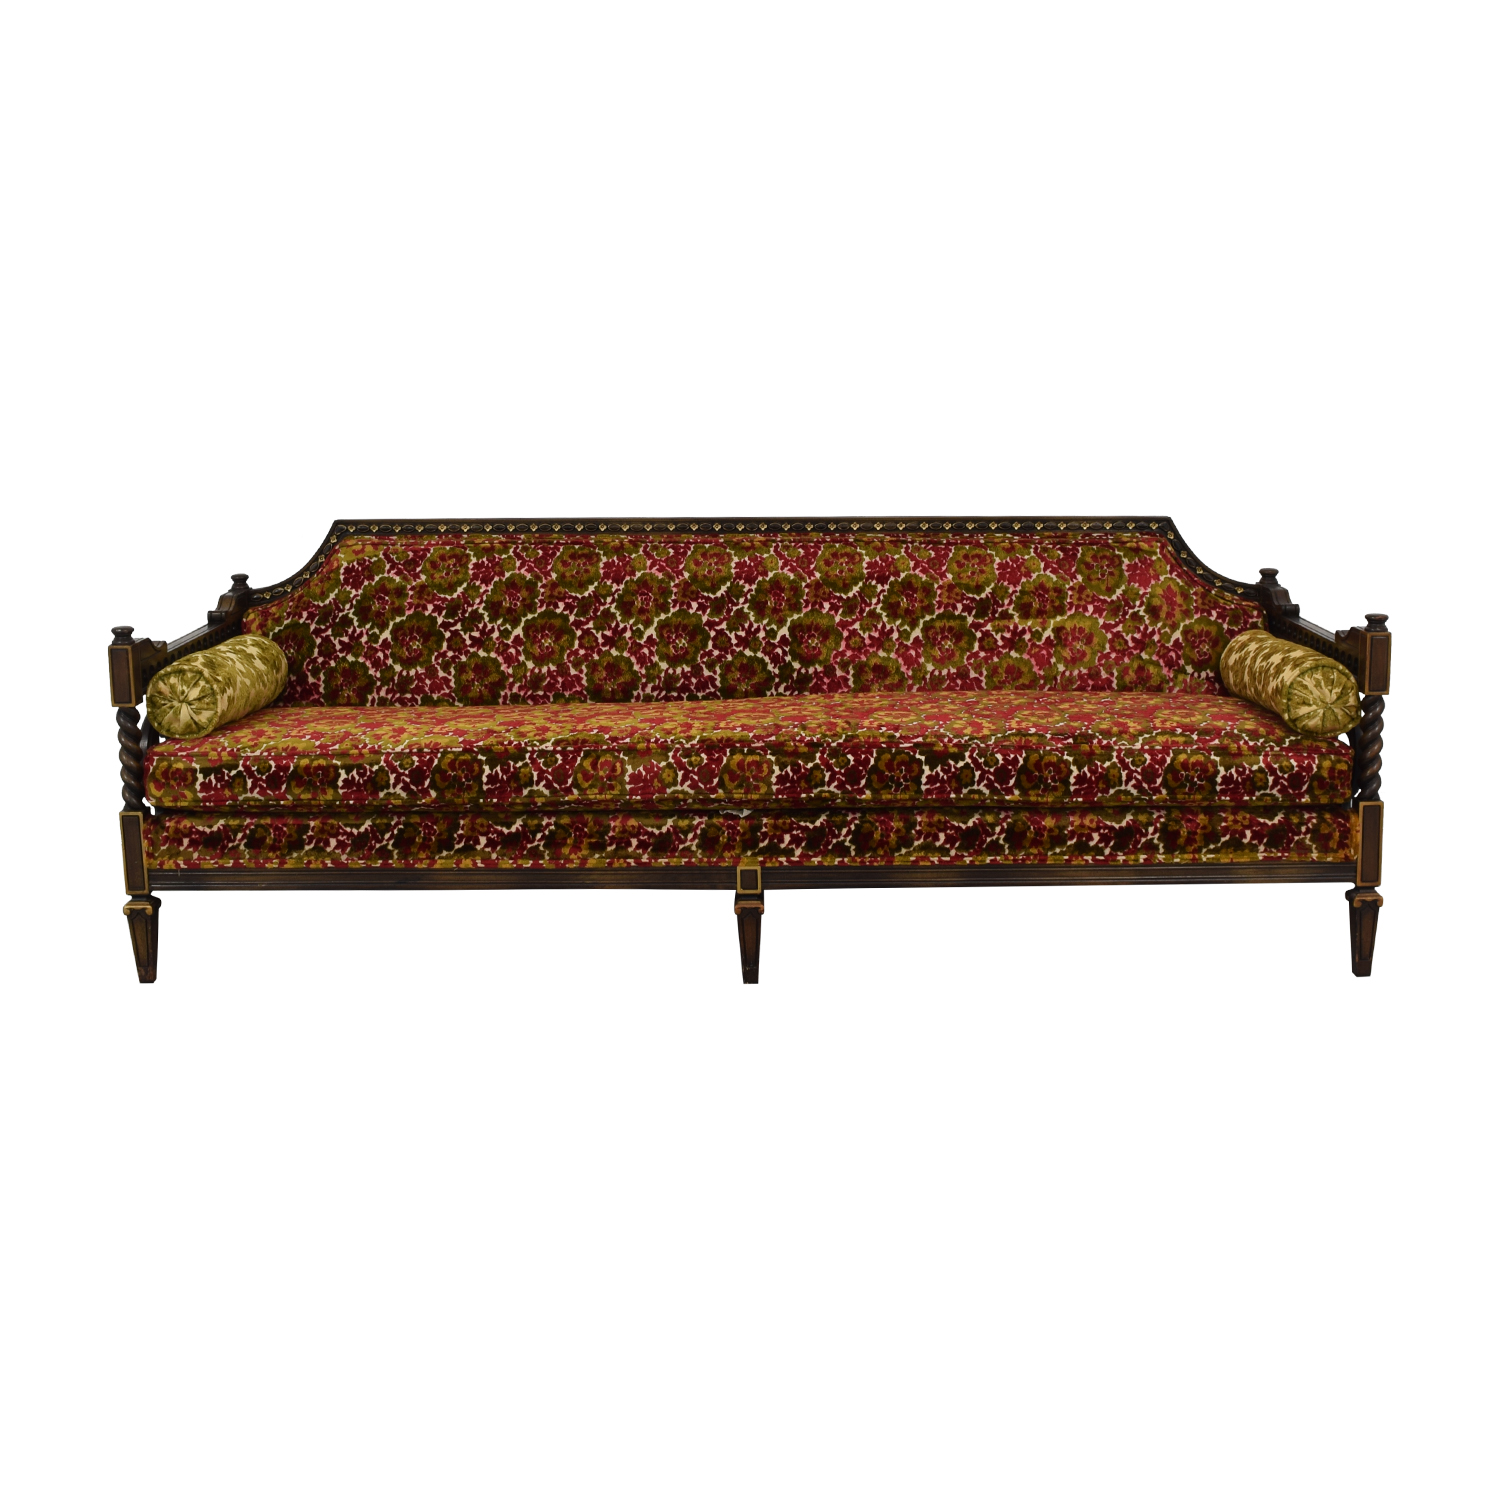 Roma Furniture Roma Furniture Mediterranean Sofa used